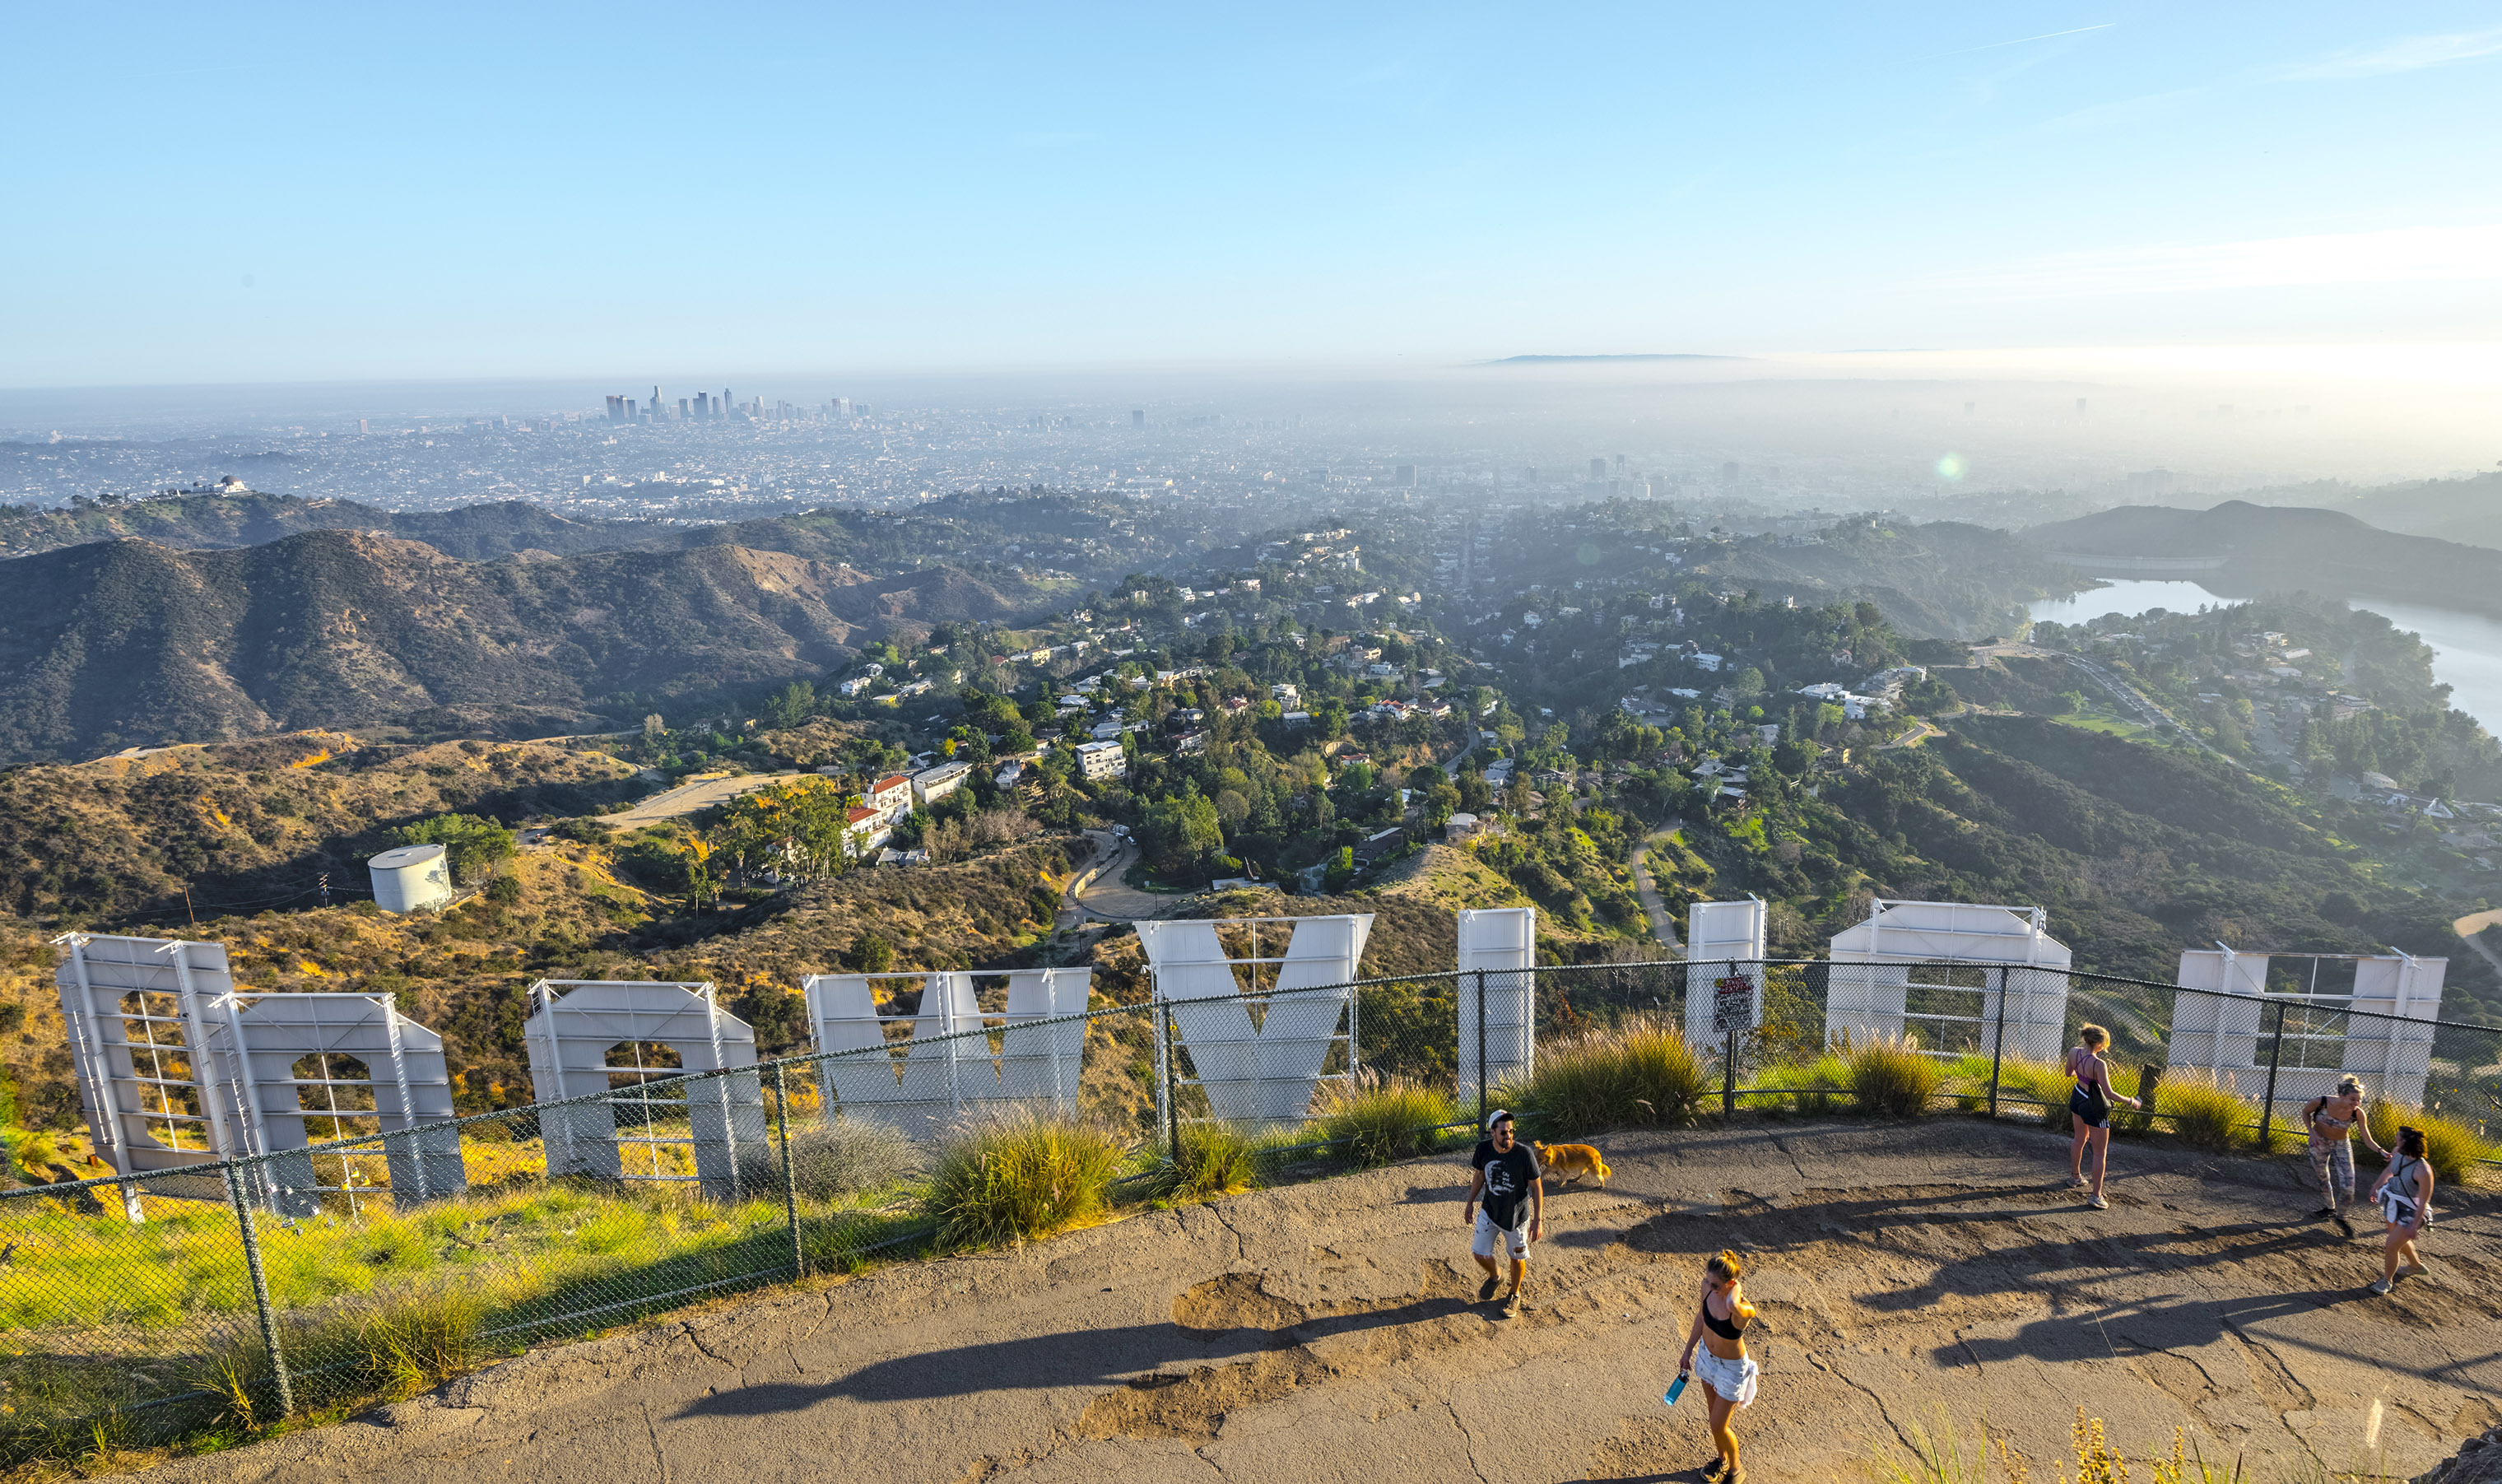 Hikers take in the view from the iconic Hollywood sign in the Hollywood Hills.